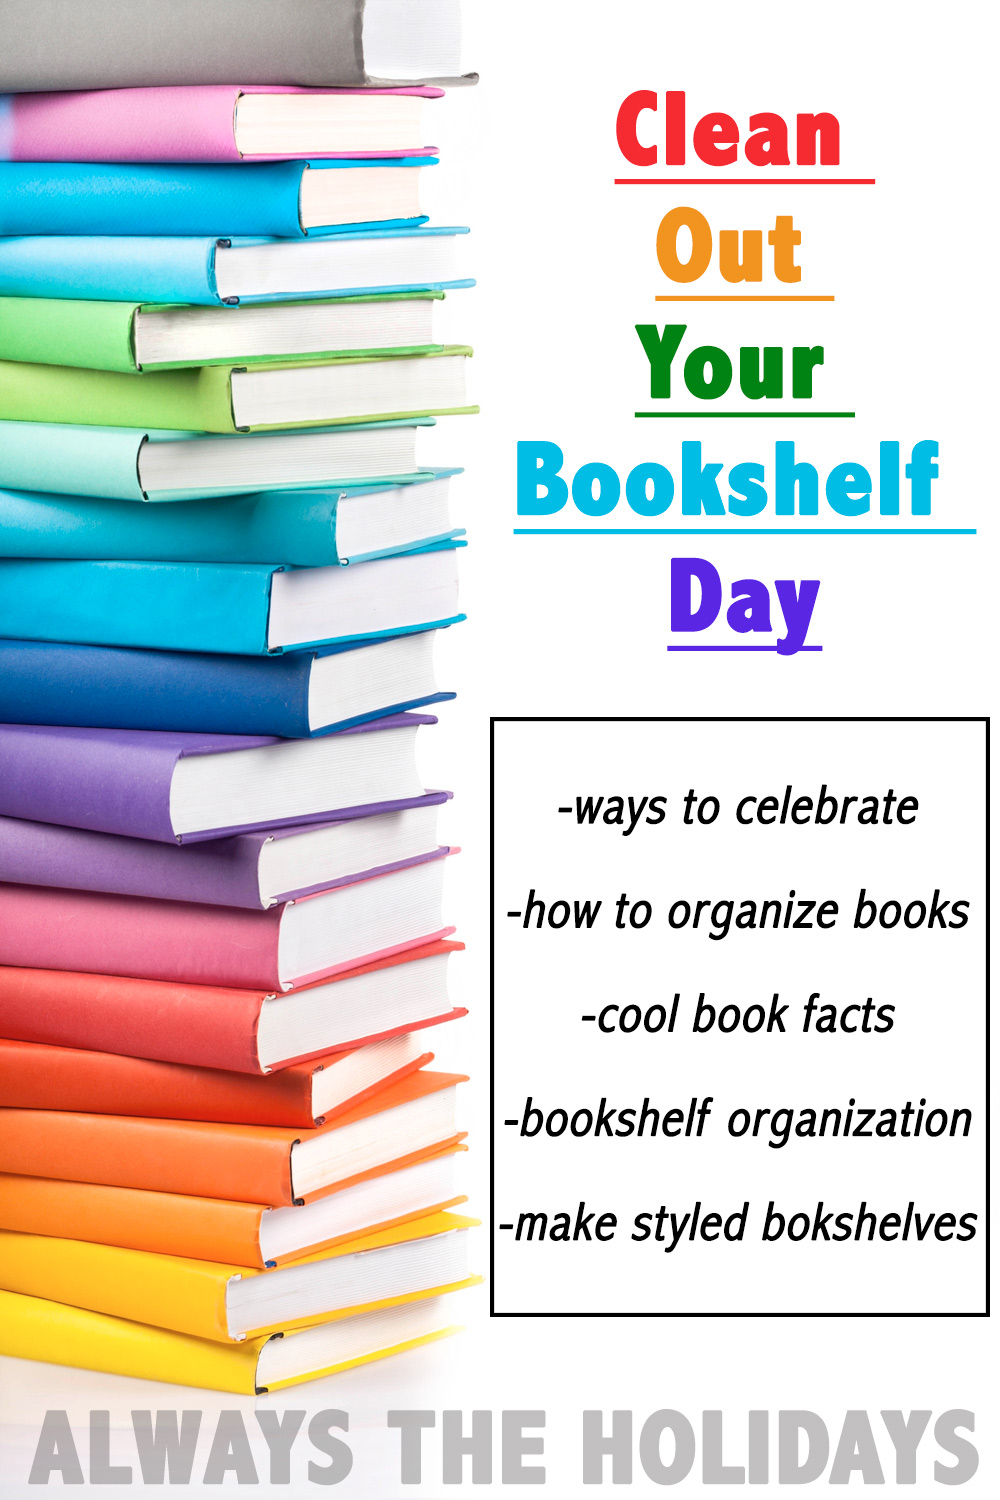 A rainbow stack of books with a text overlay for Clean Out Your Bookcase Day suggesting things to do like read book facts, tips for how to organize books, and ways to celebrate.